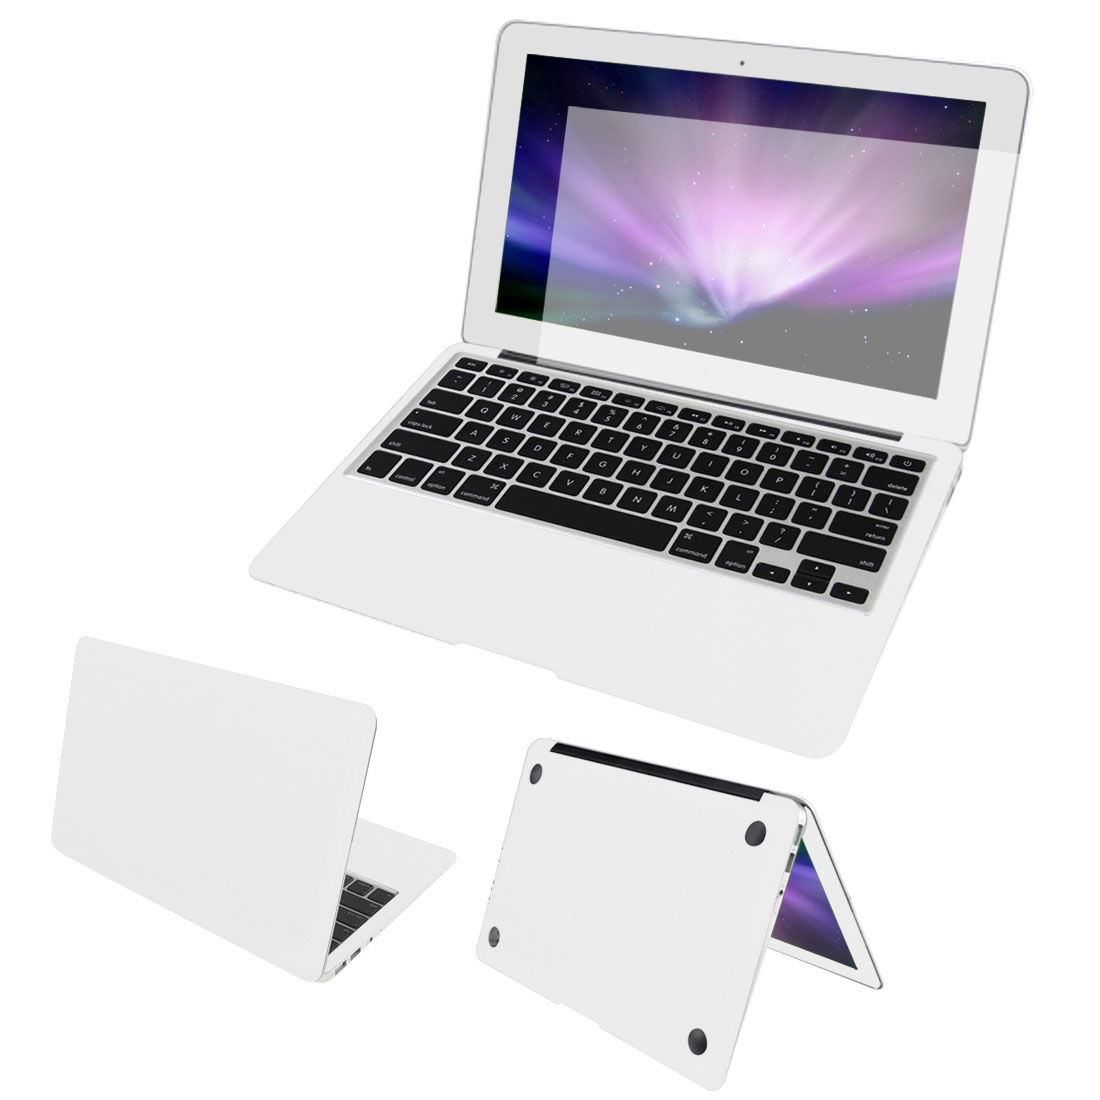 White Full Body Wrap Protector Decal Skin Screen Guard for Macbook Air 13""